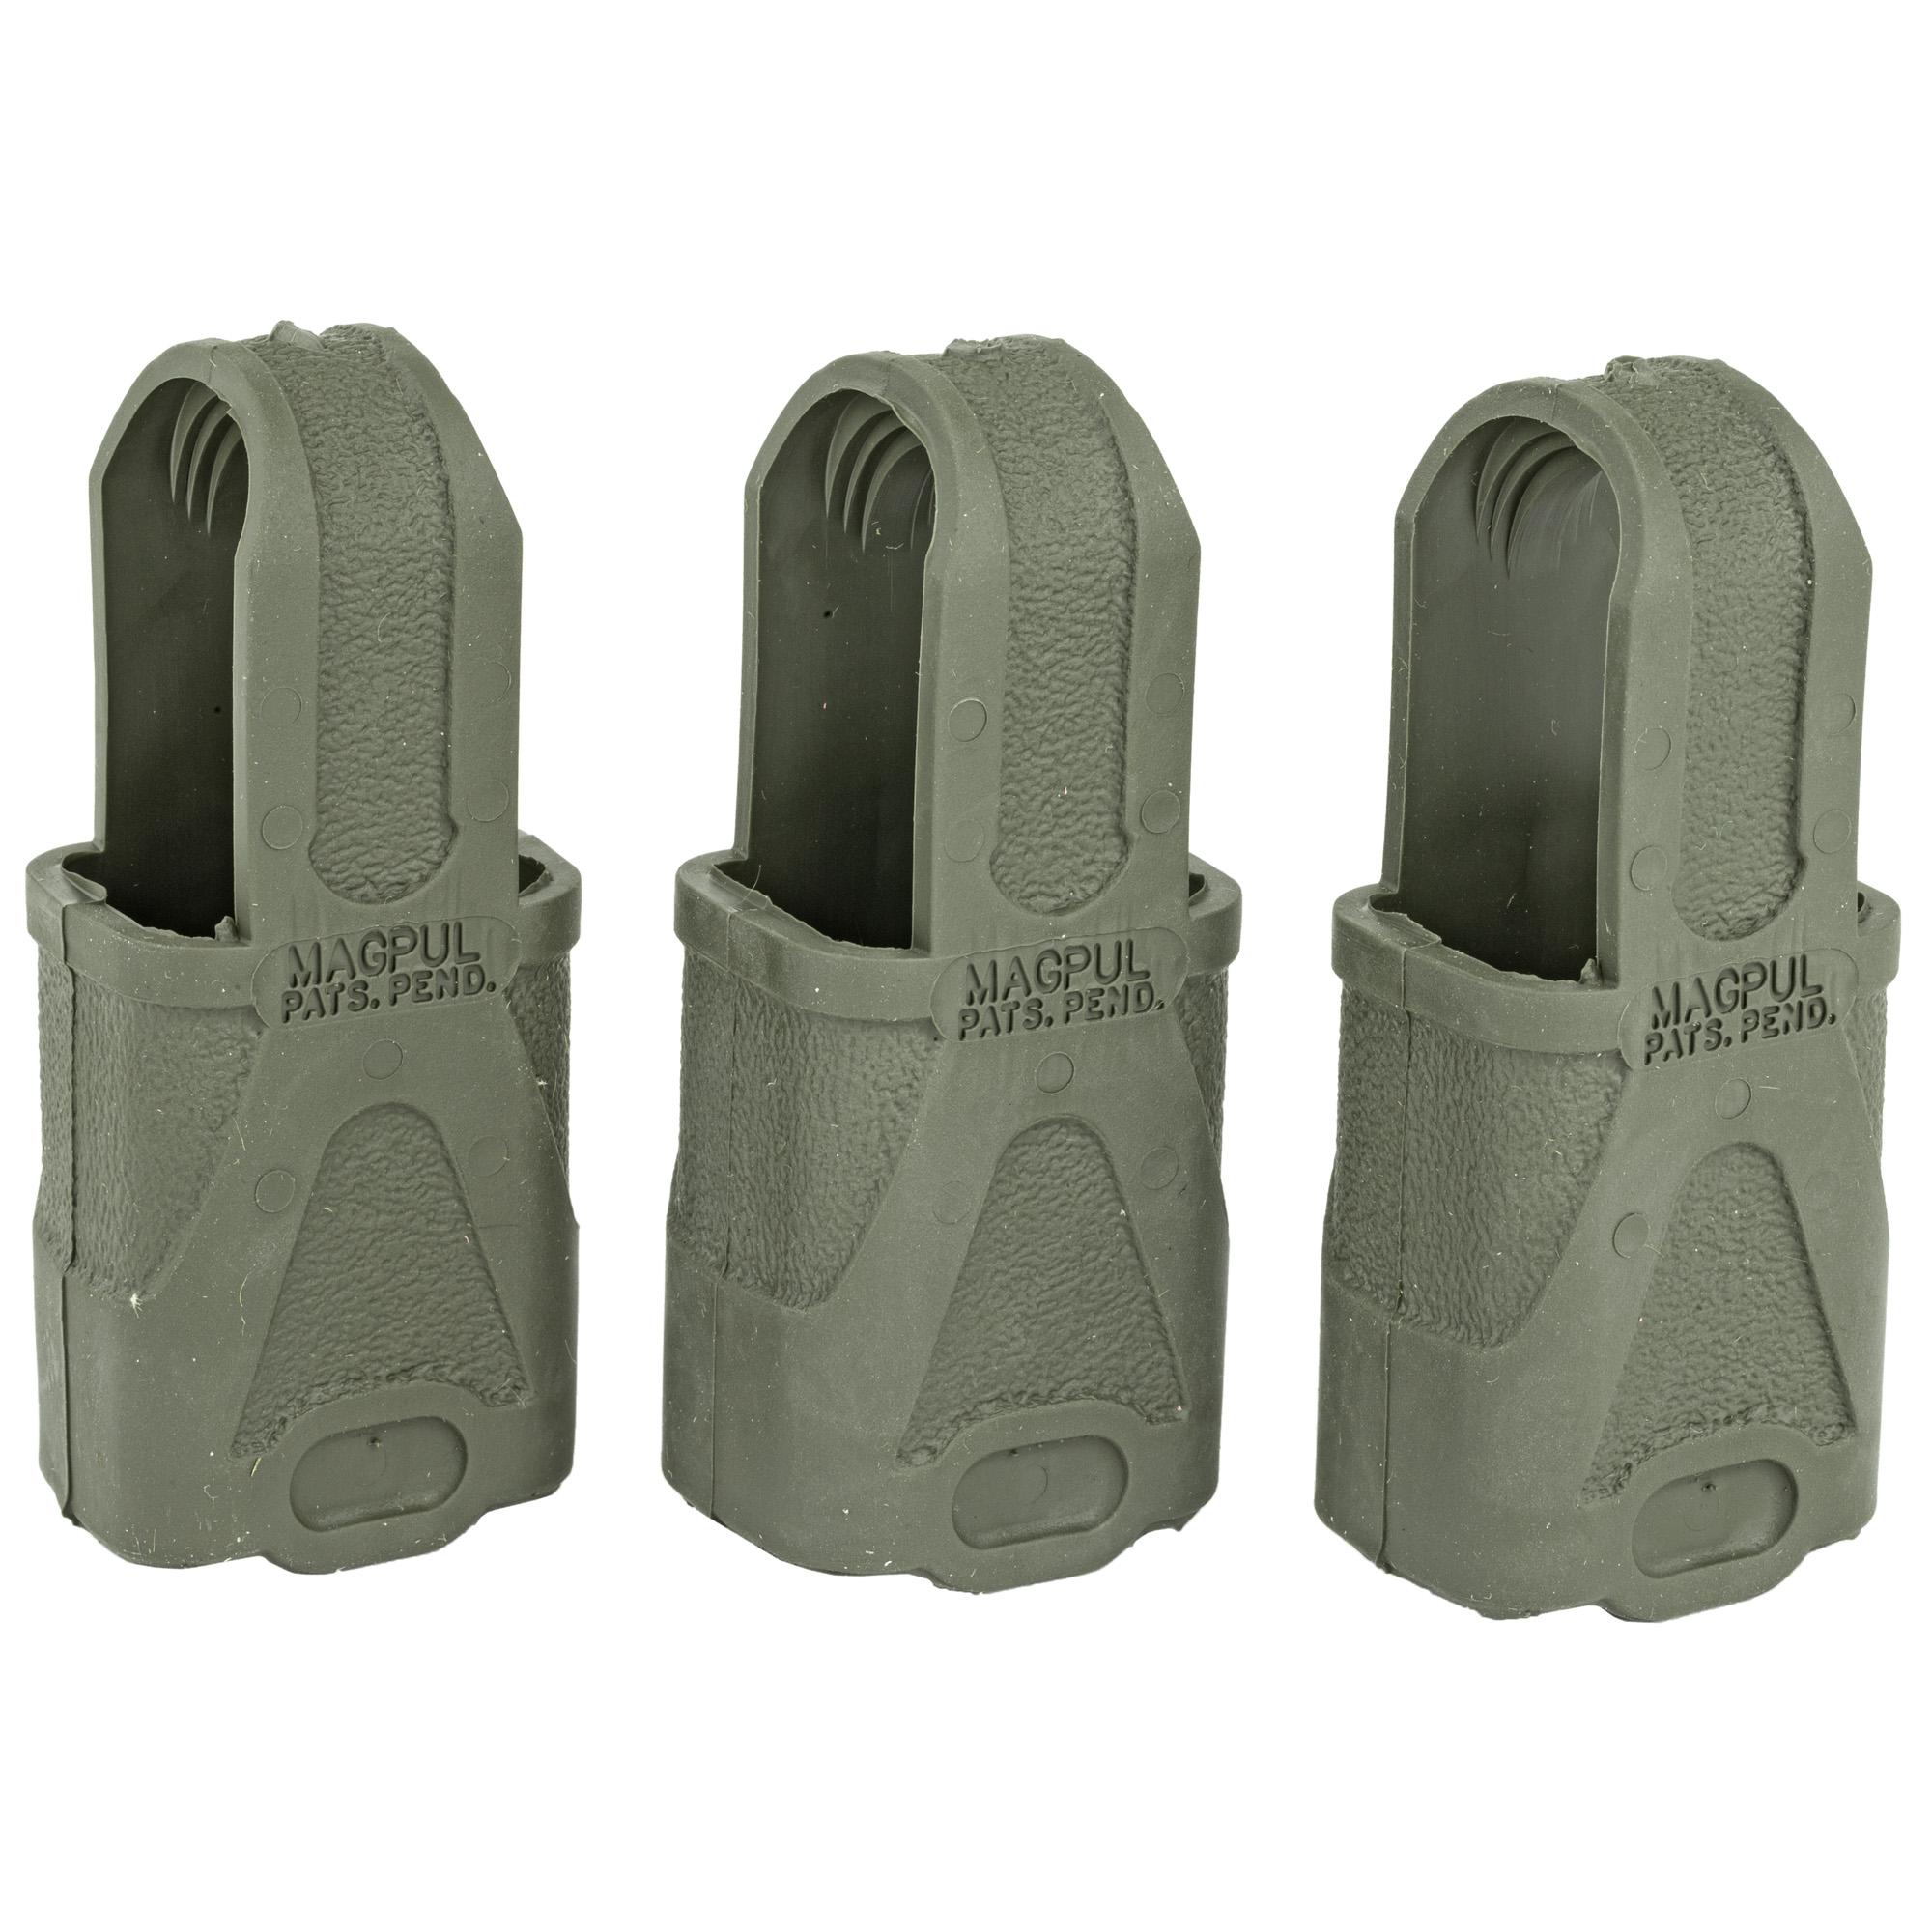 """When installed on the base of a submachine-gun magazine"""" the original Magpul provides improved speed and controllability during high stress"""" tactical magazine changes. Durable synthetic rubber loop with recessed rough gripping surface. Quick and easy installation and removal. Patented design based upon the tried and true para-cord loops and duct-tape tabs currently in use with special warfare units worldwide."""